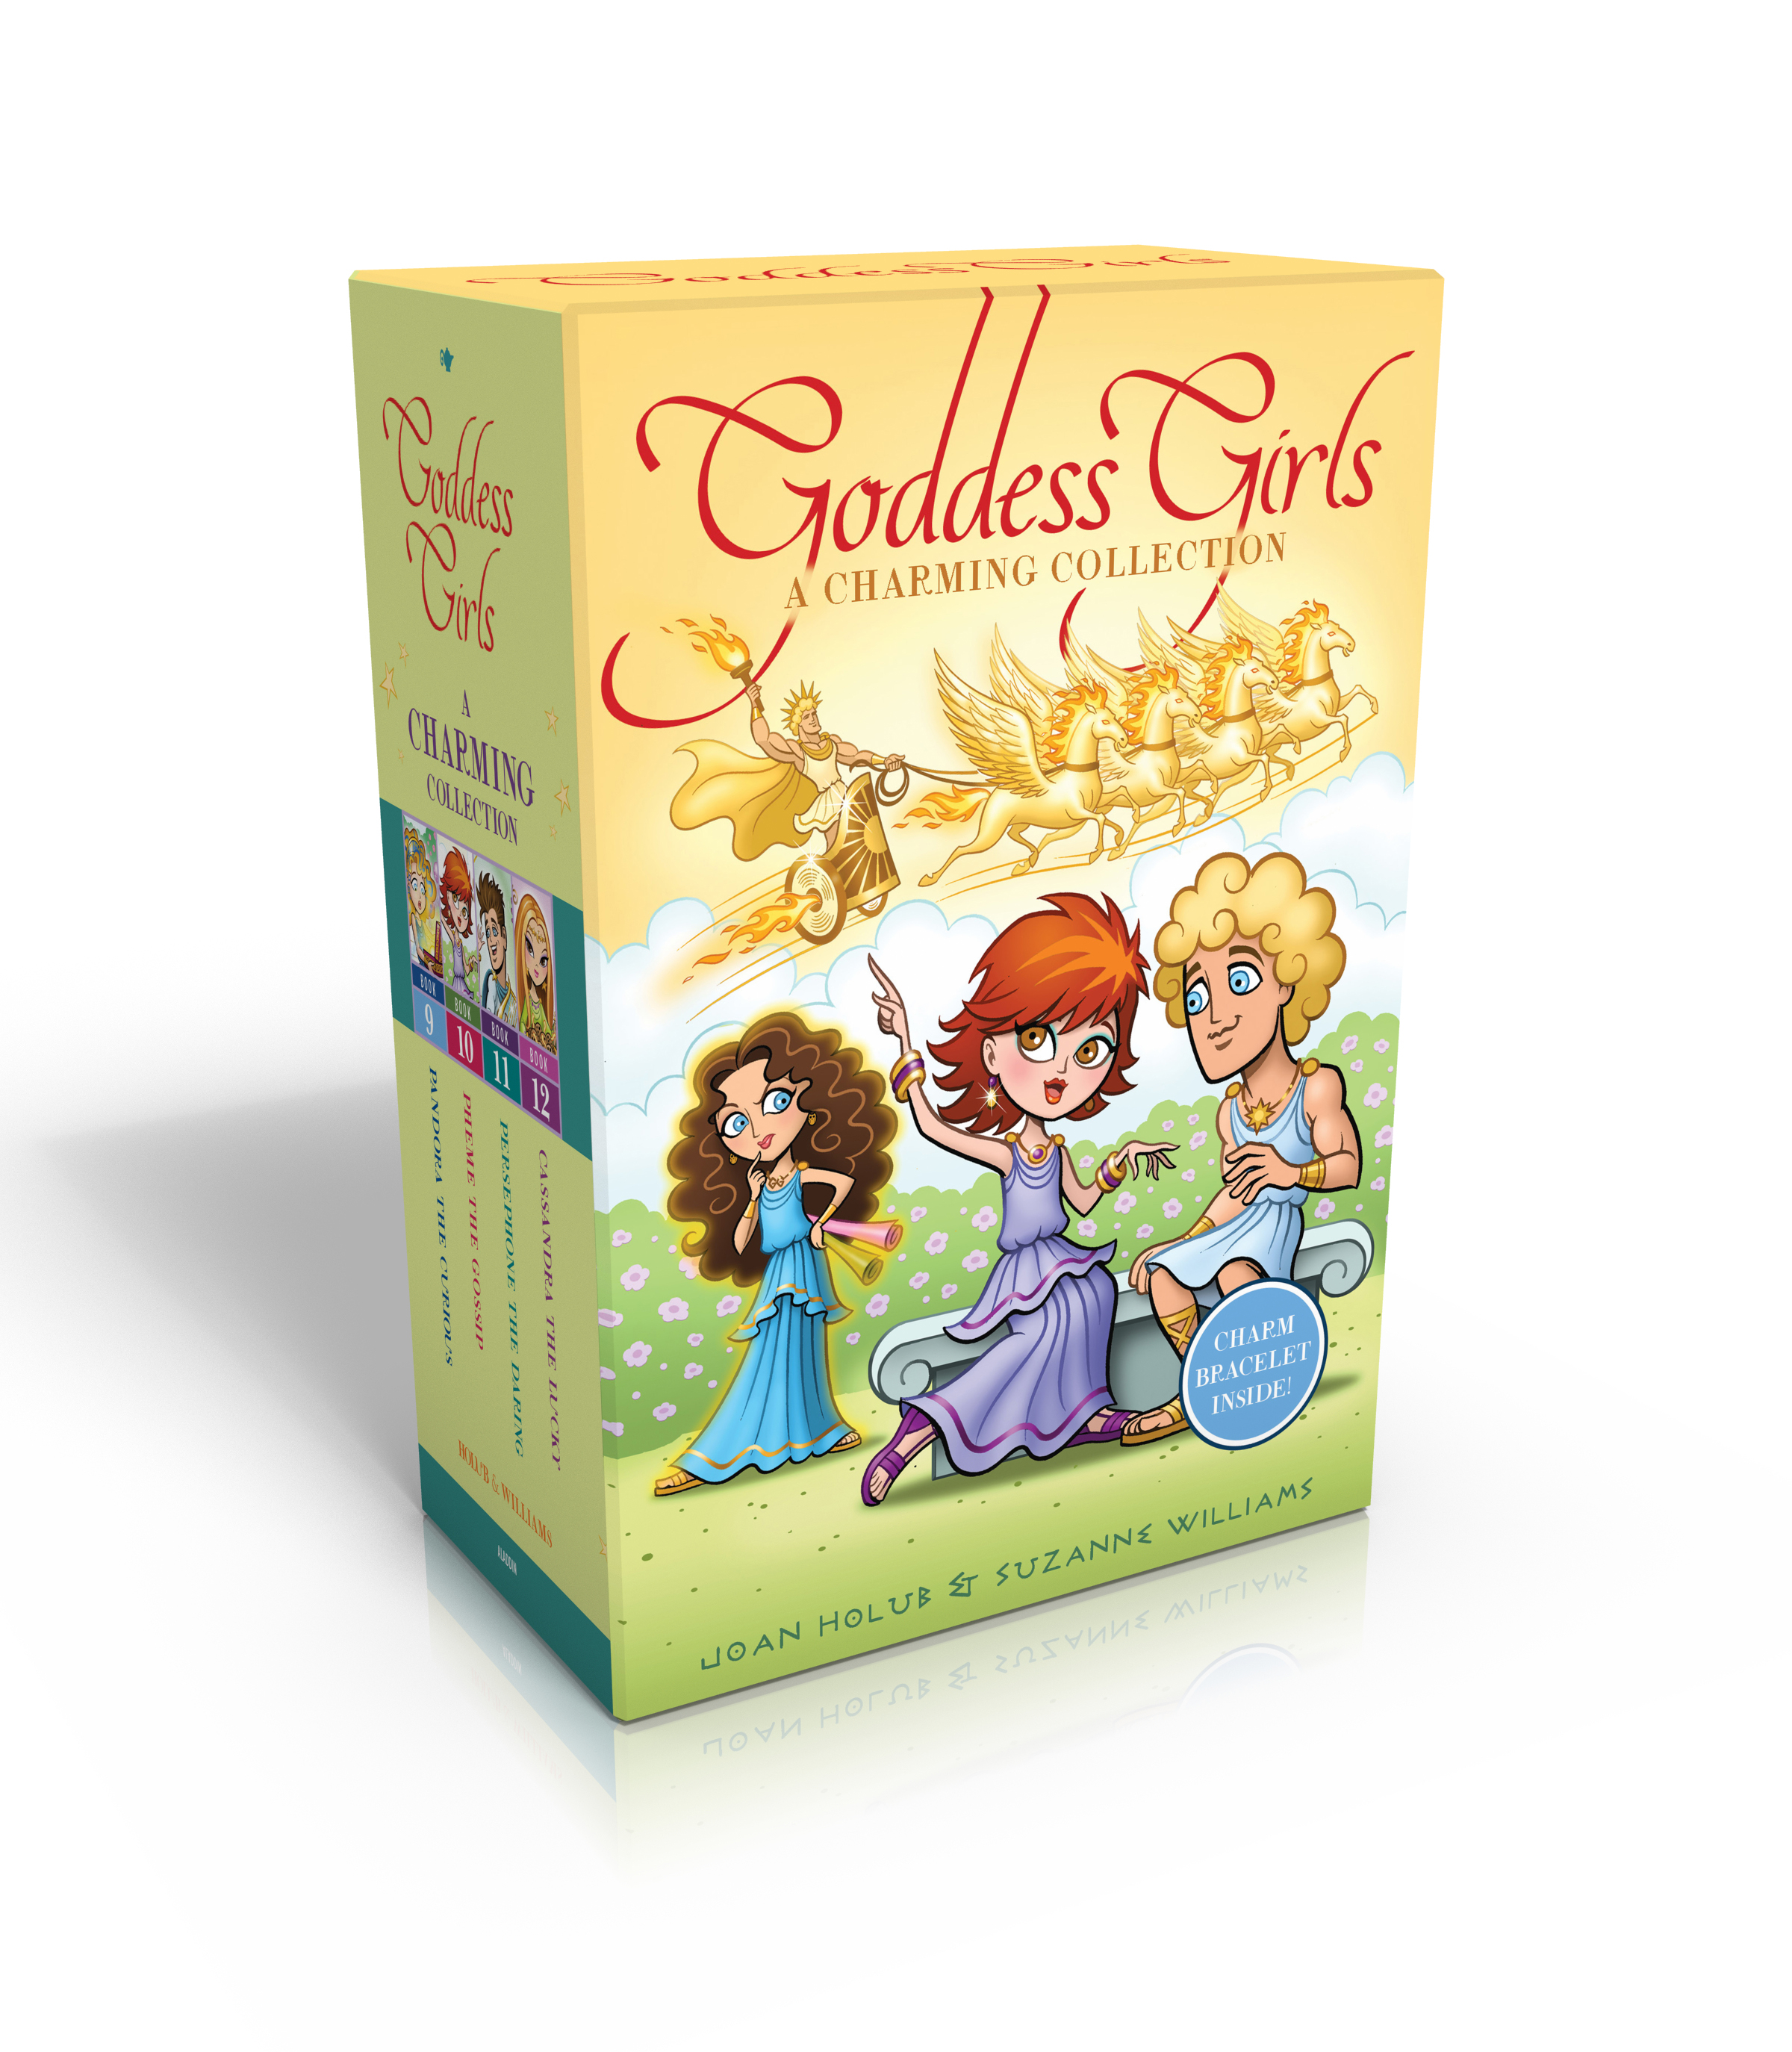 goddess girls books by joan holub and suzanne williams from simon